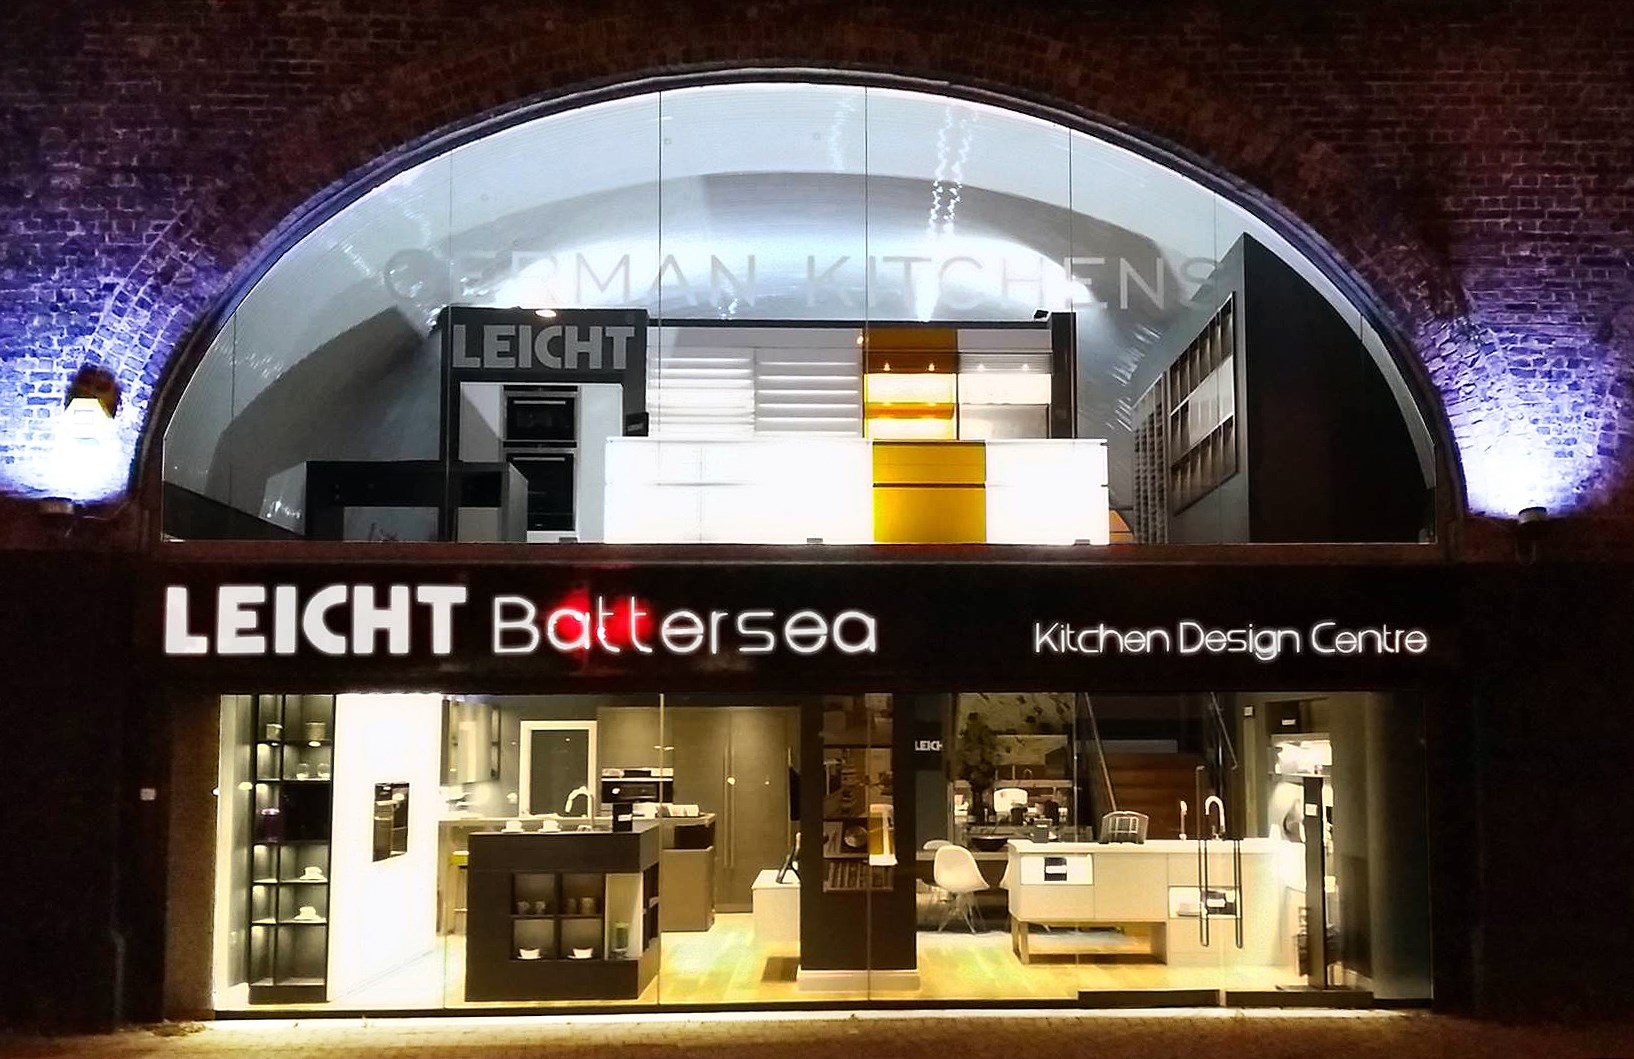 The Leicht Kitchen Design Centre Announced That It Is Changing Warehouses  To Clarkes Of Amersham, Which Will Have The Capacity To Store Over 200  Leicht ...